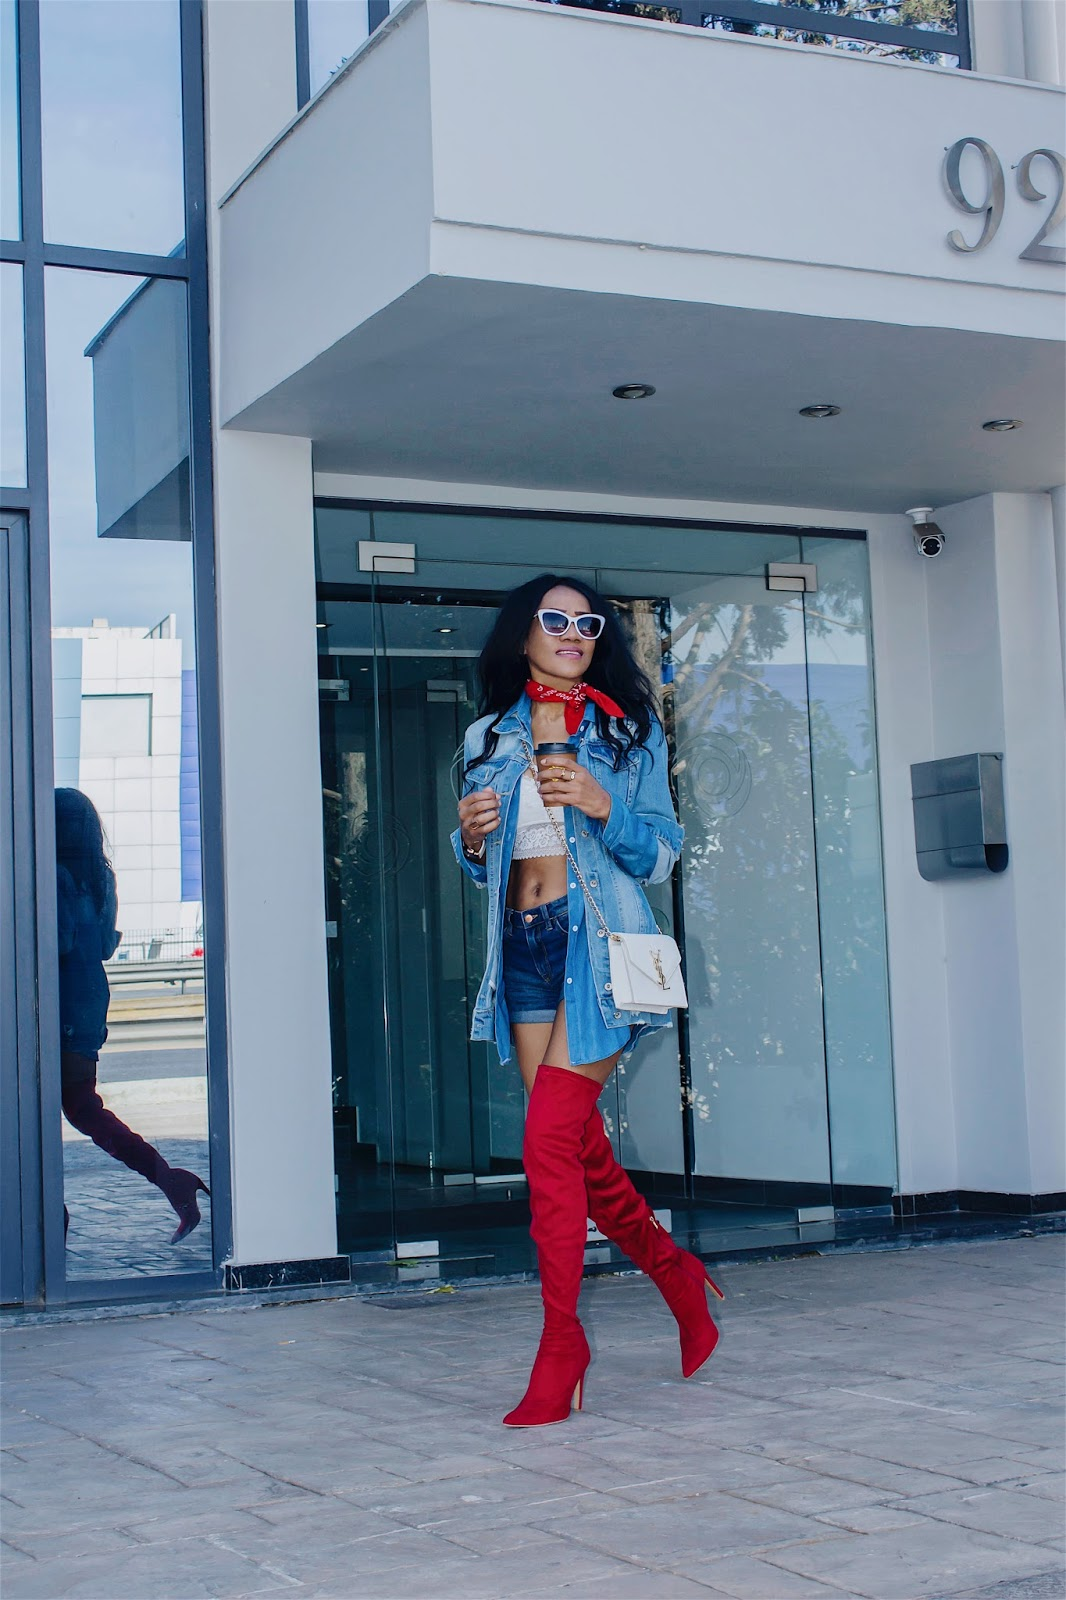 9e715afd3e95 ... vibrant color and these boots will turn heads wherever I go. I'm so  ready for the winter with the warm, stunning, trendy red over-the-knee boots